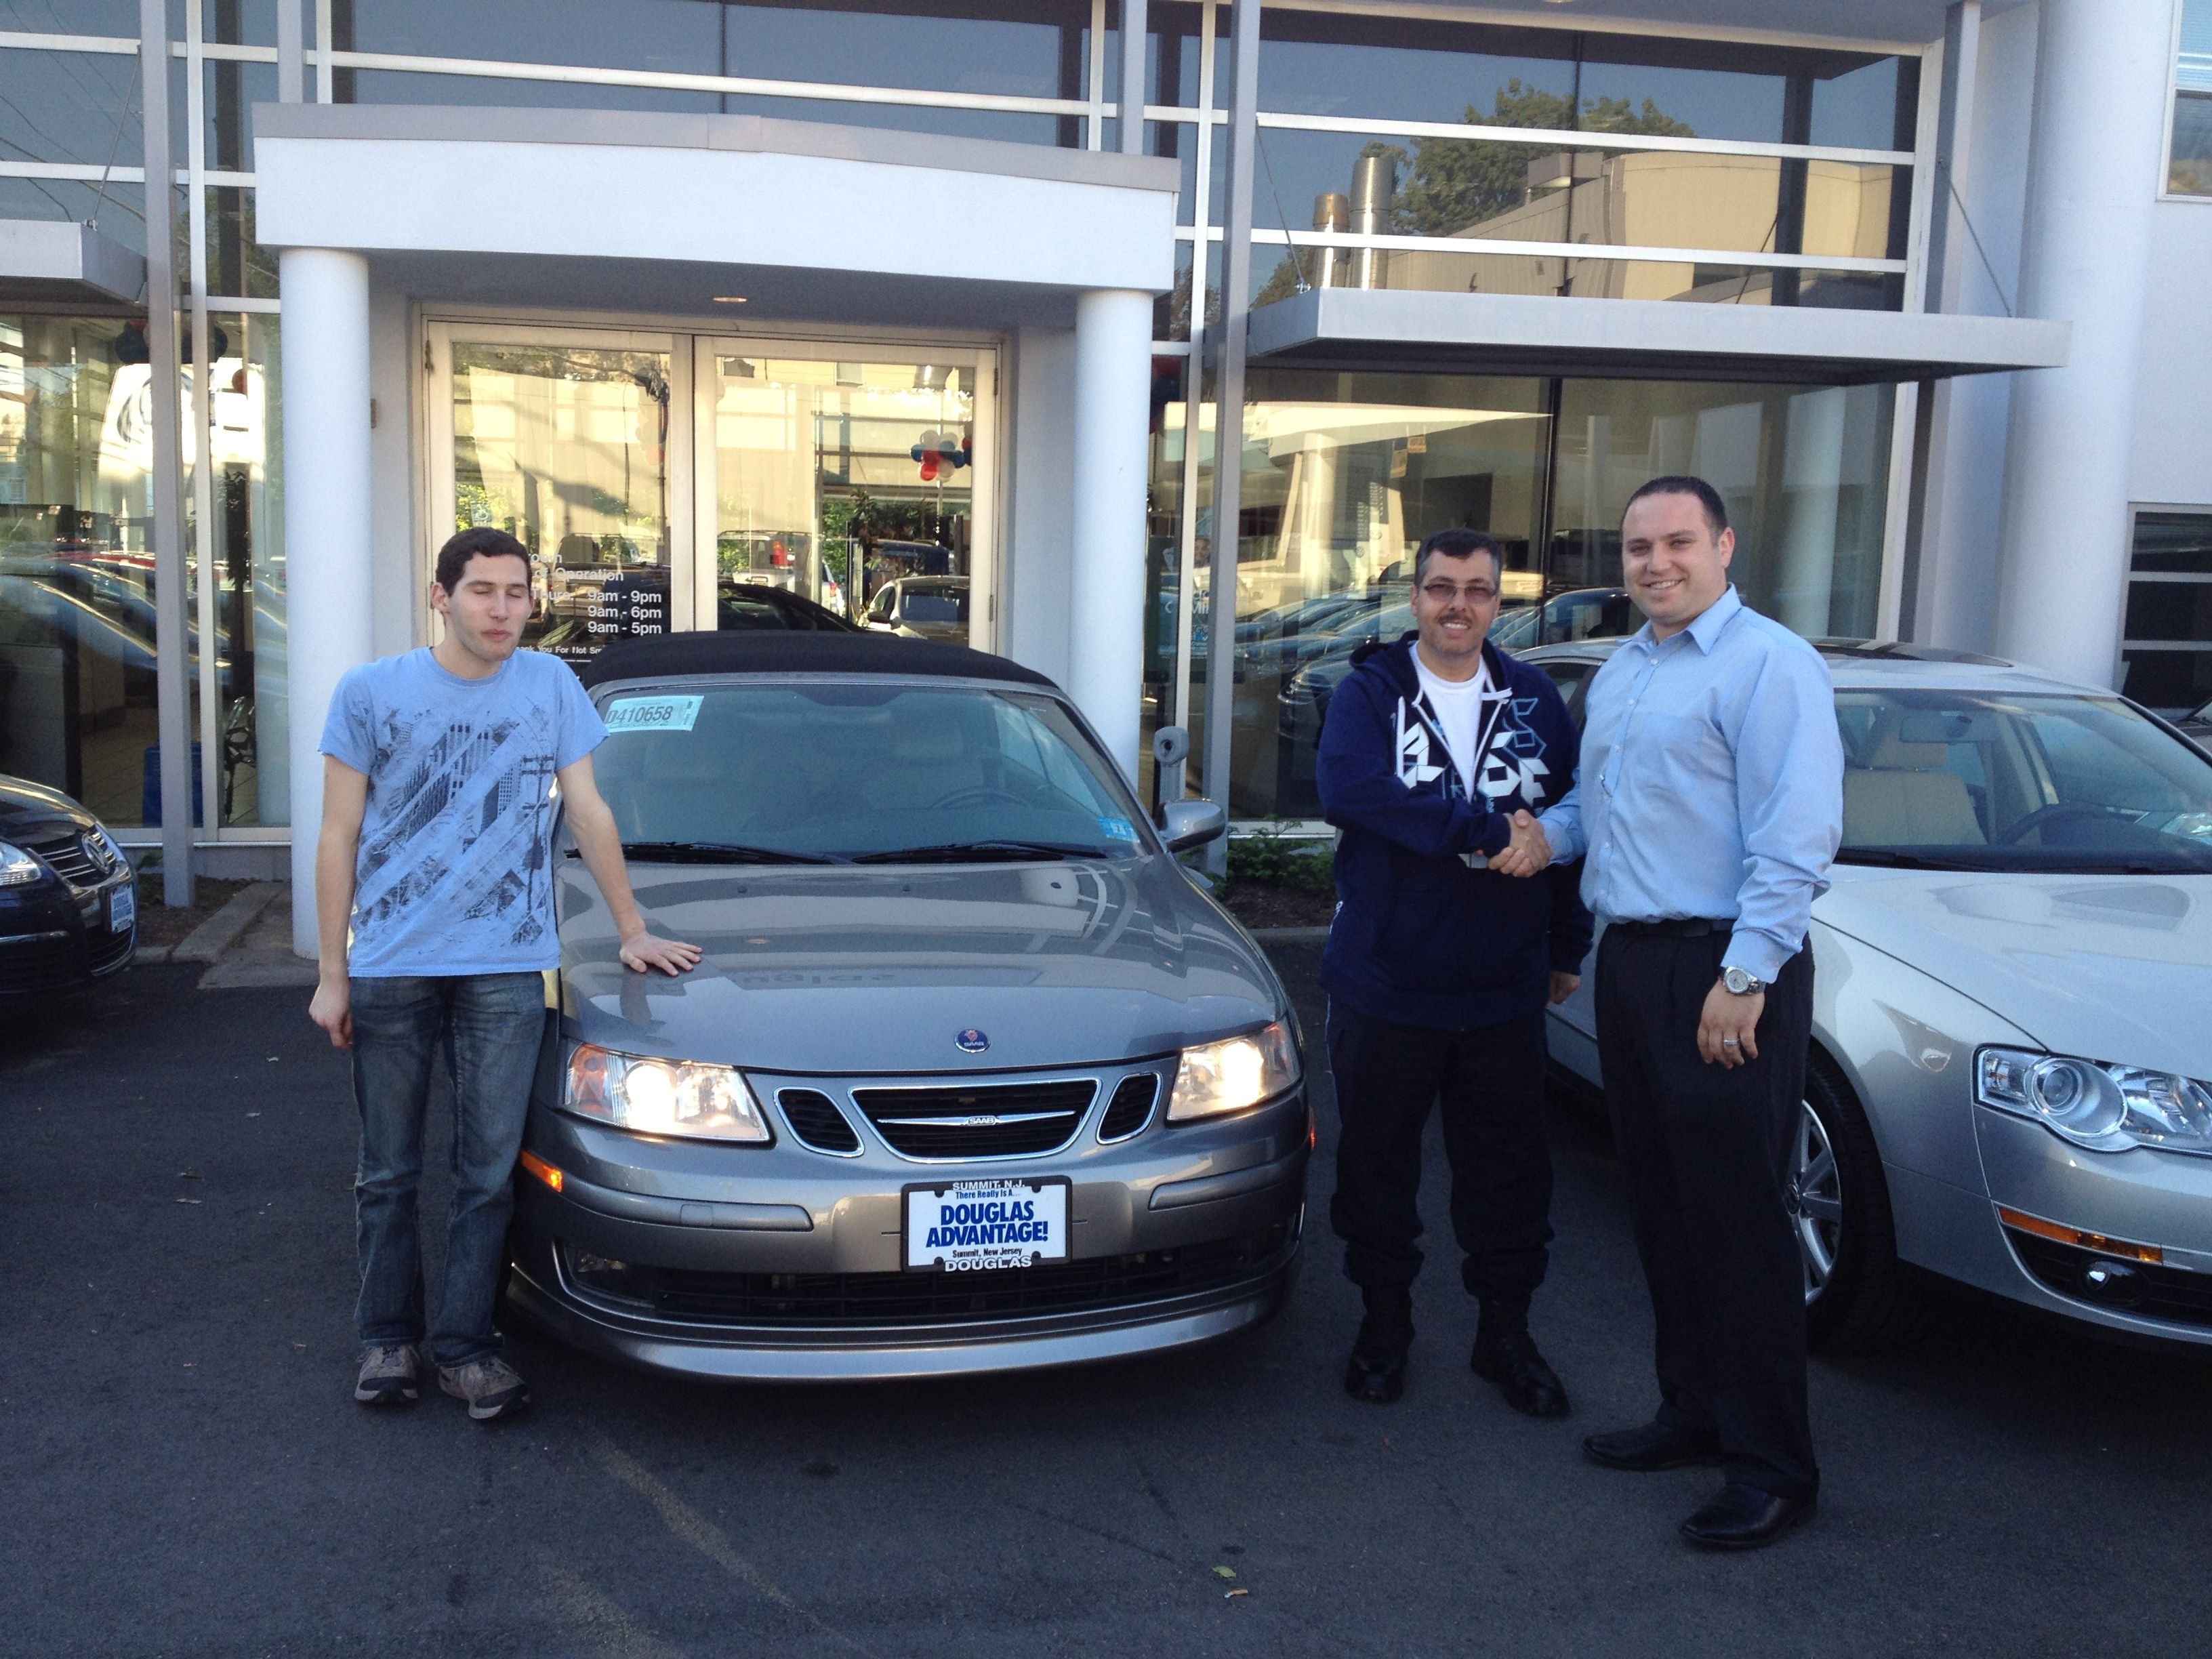 Tony Campos From Union Nj Picking Up His 2005 Saab Convertible From Douglas Vw Sales Consultant Vlad Voskoboynikov Saab Convertible Cars For Sale Volkswagen